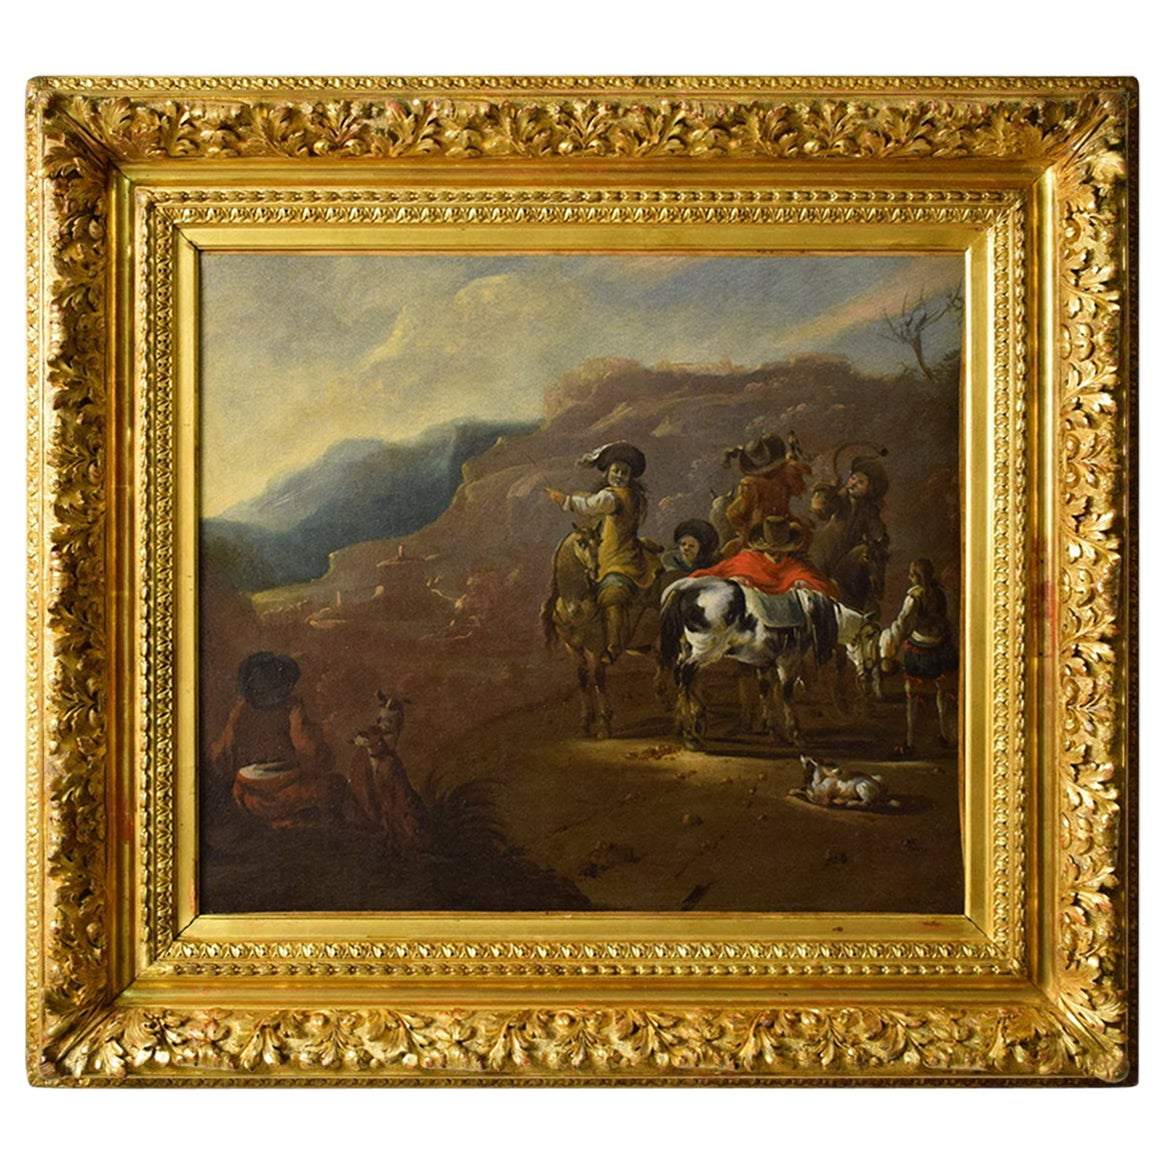 17th Century, Oil on Canvas Dutch Painting with Hunting Scene